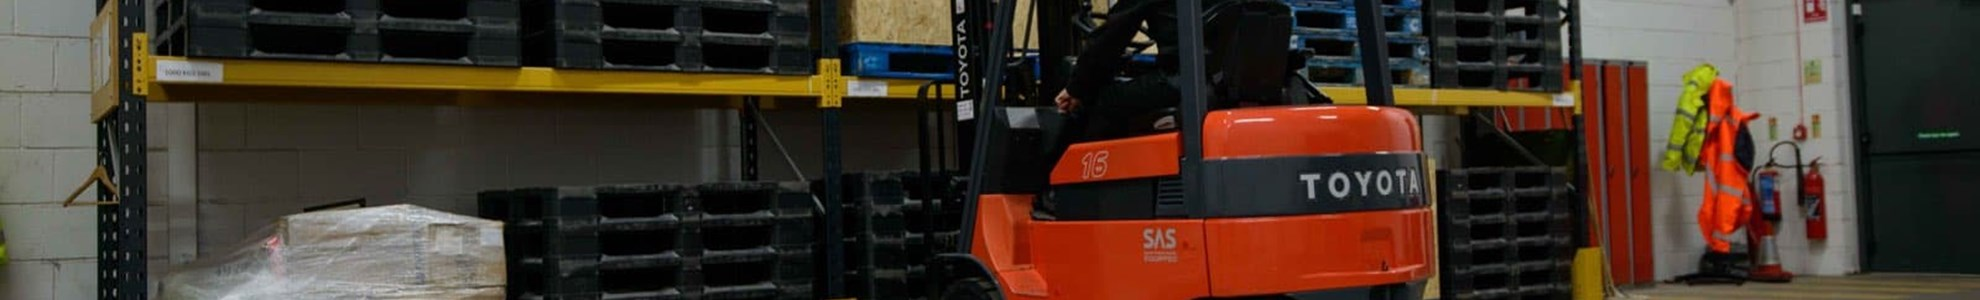 forklift stacking pallets in a rack